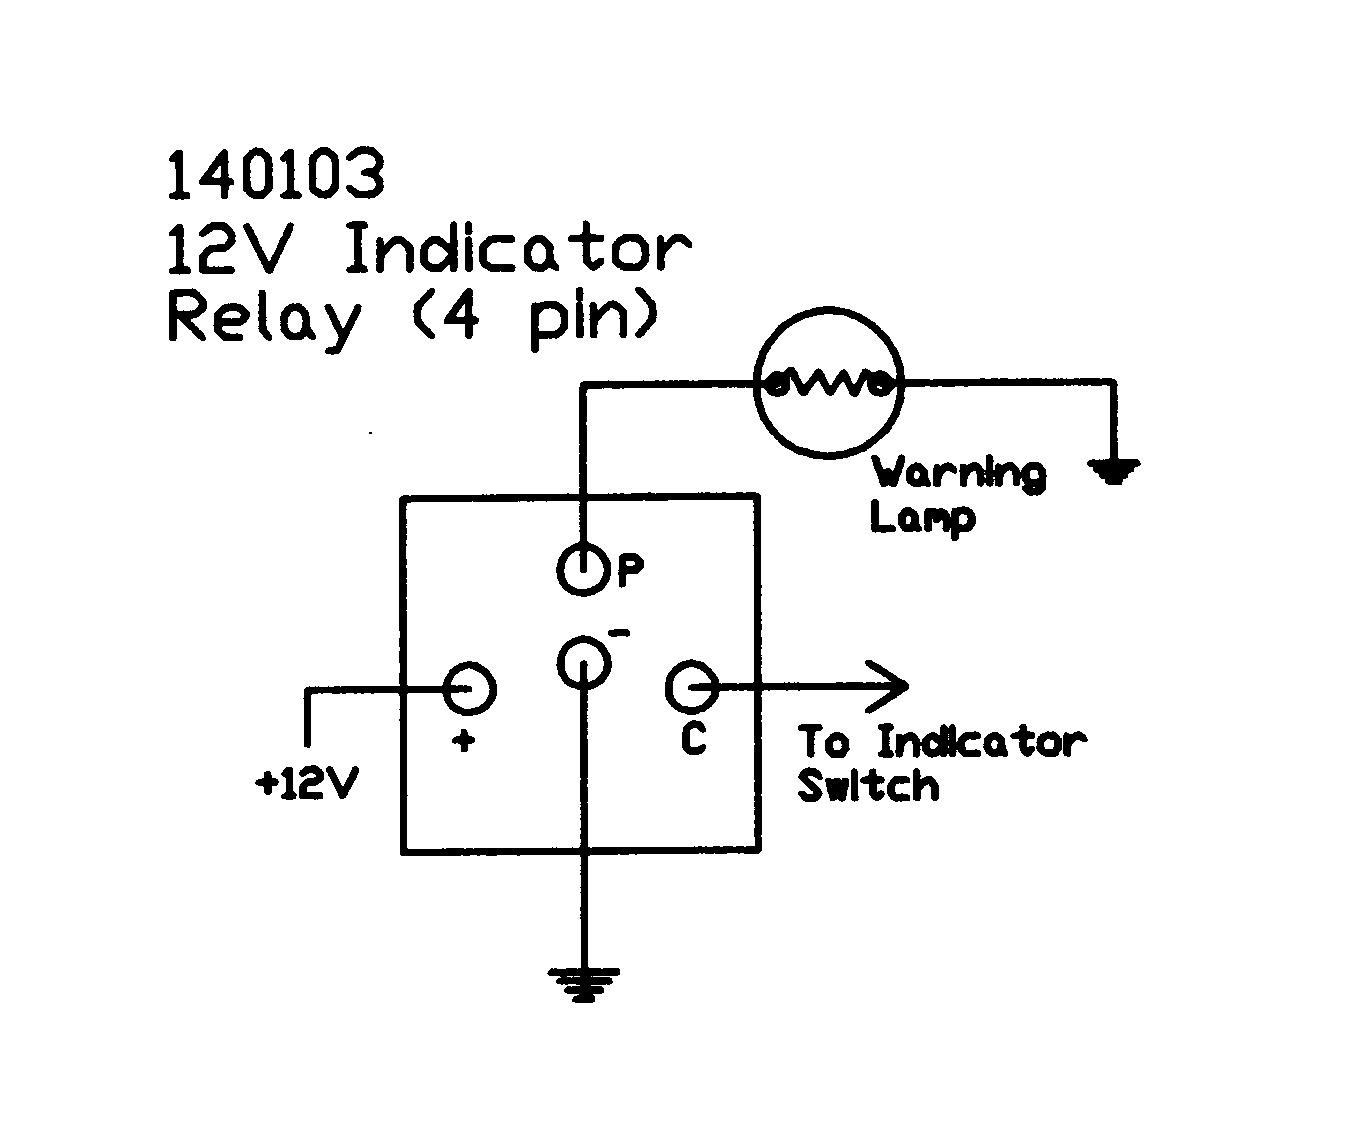 Wiring Diagram For 12v Indicator